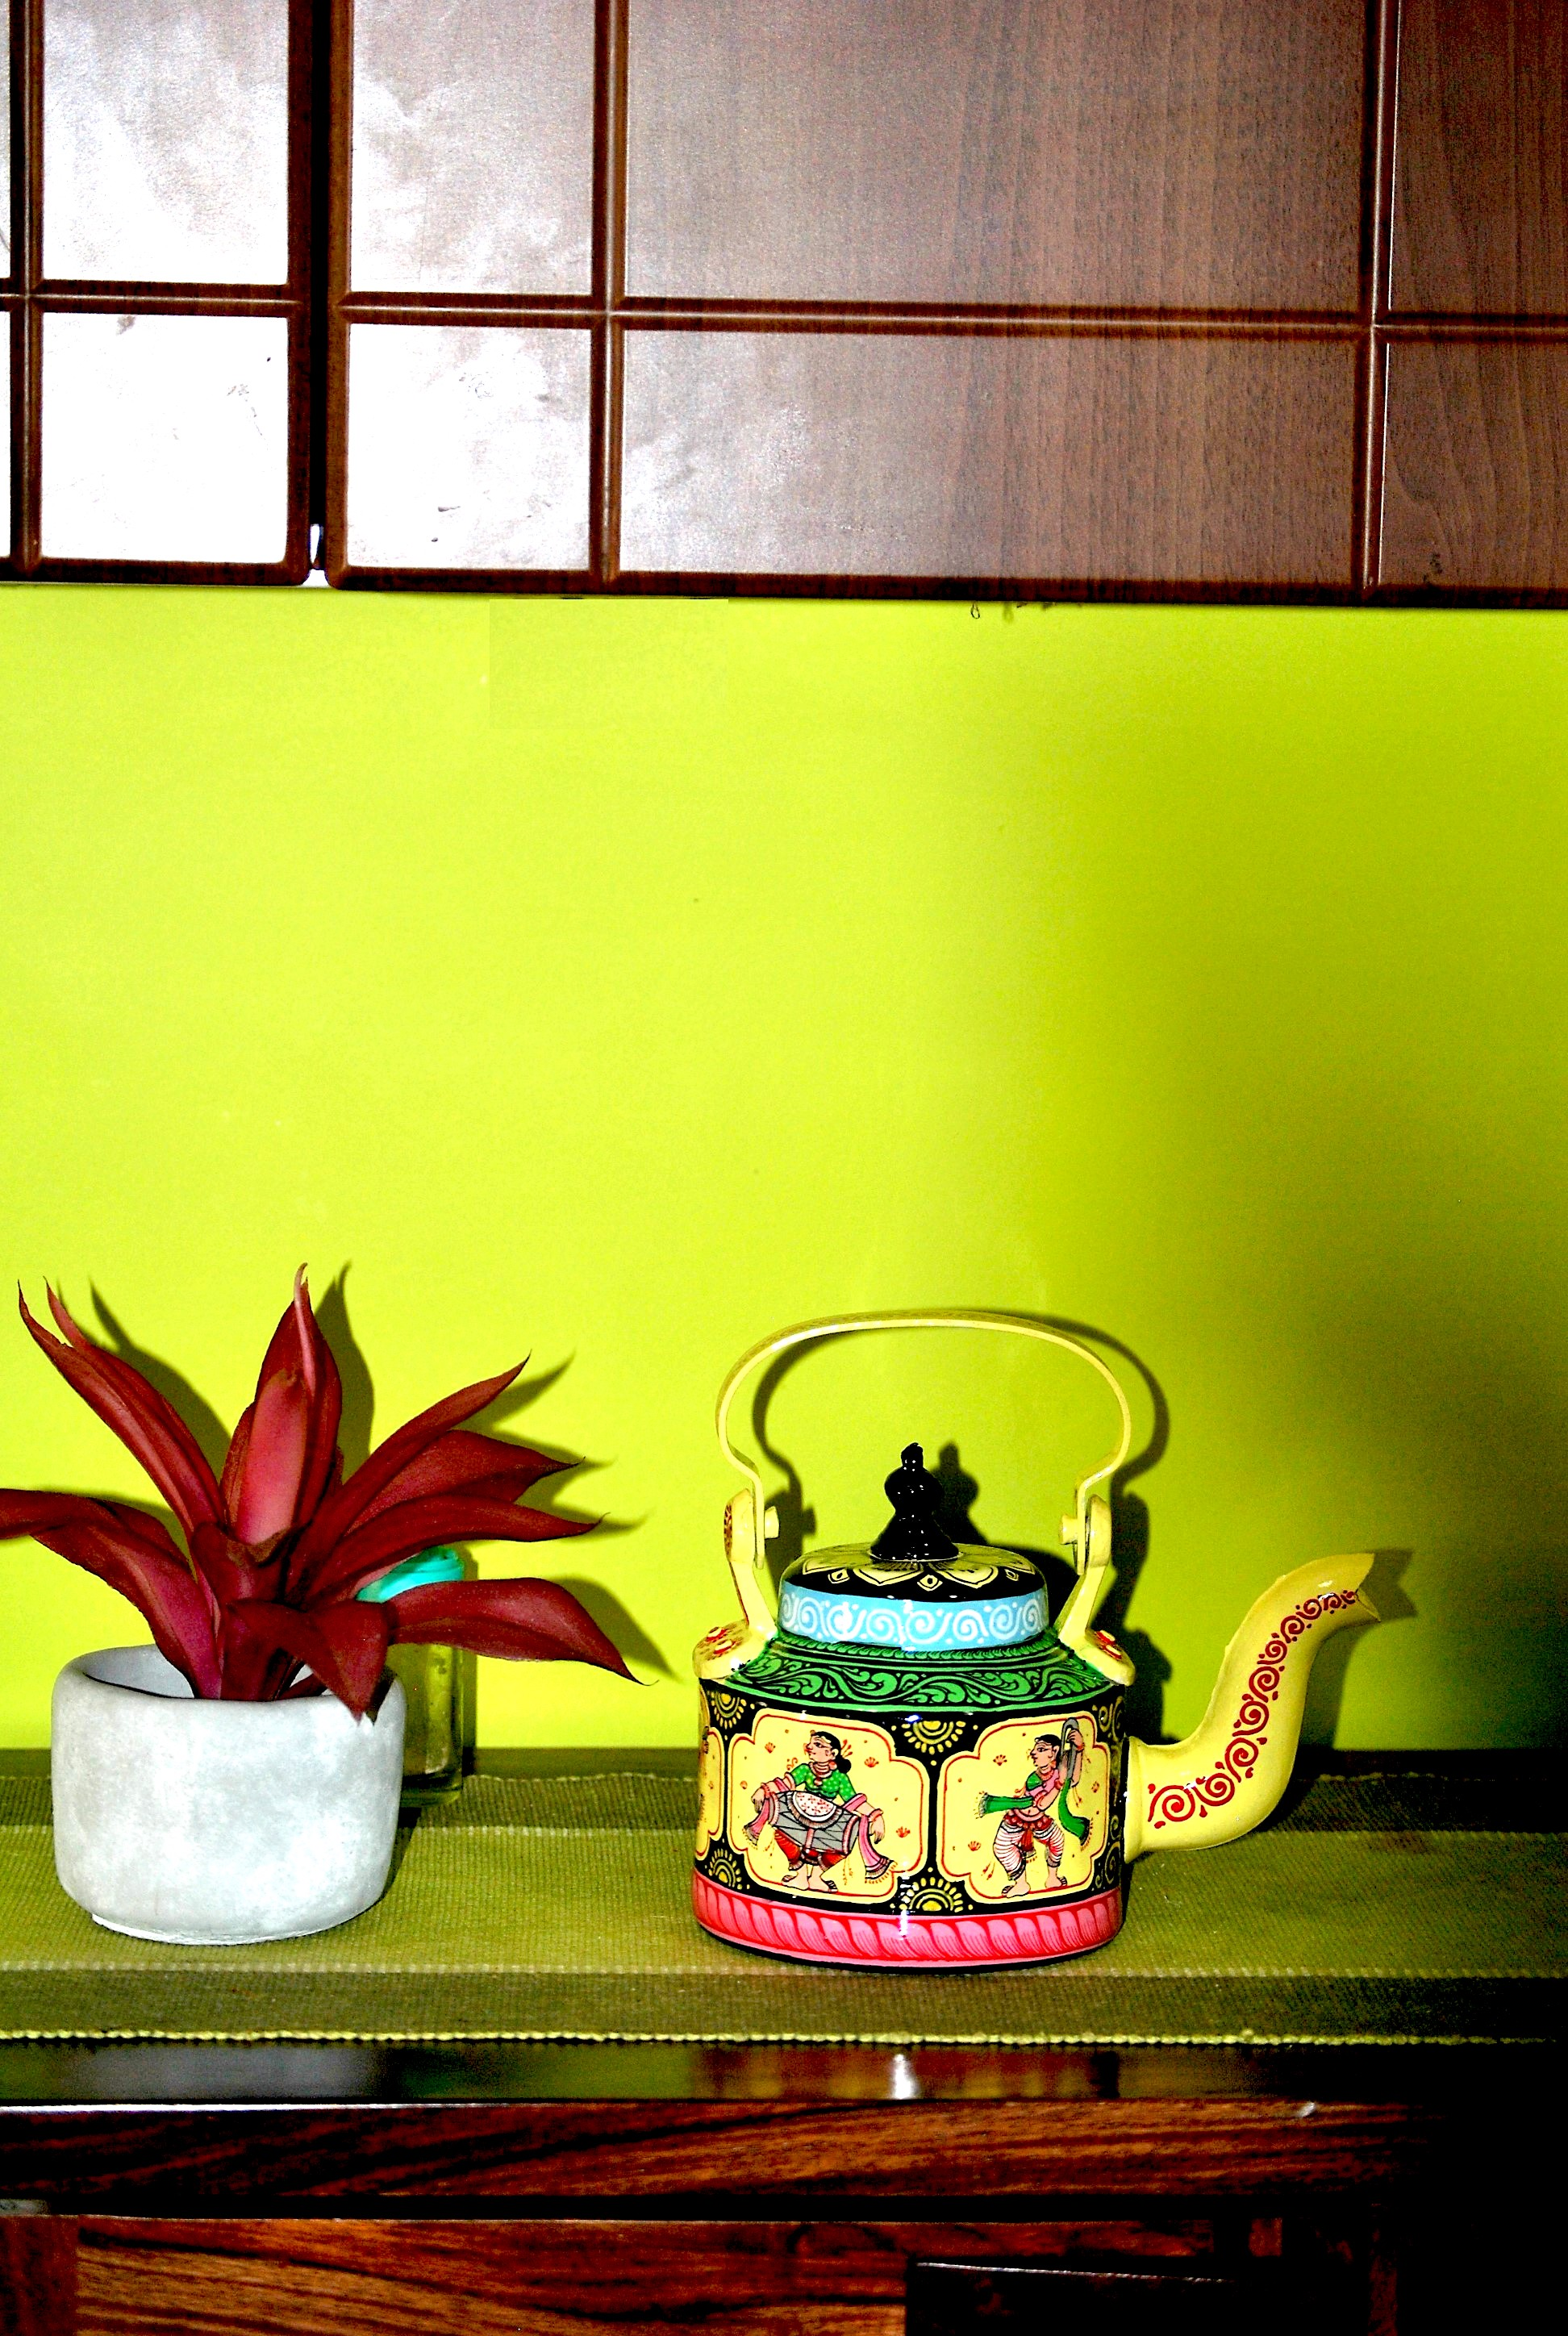 Top-decor-ideas-for-your-home-with-hand-painted-kettles9 Top decor ideas for your home with hand-painted kettles